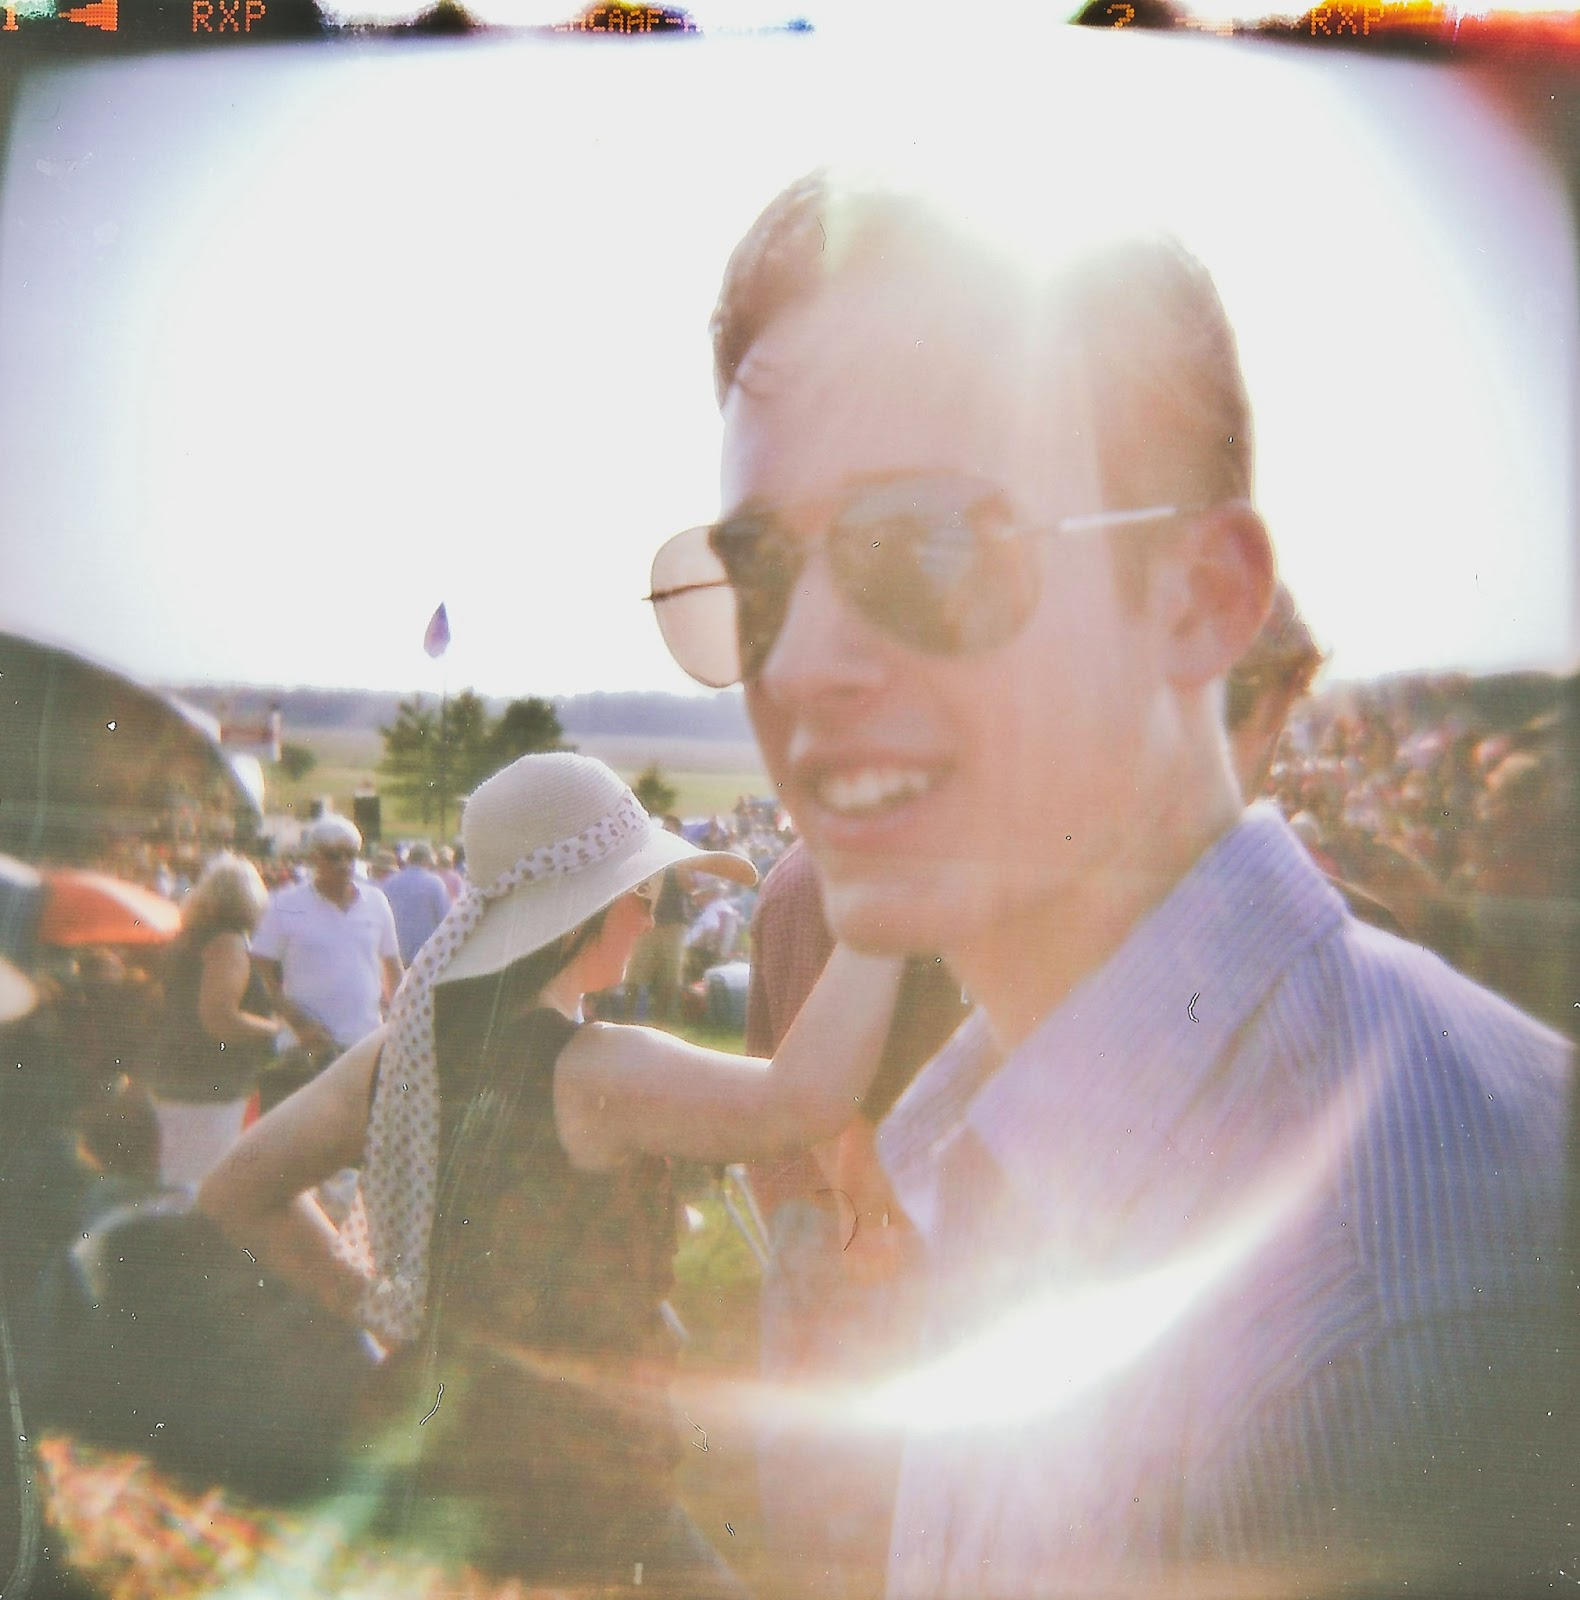 120-Holga-Stephen-Symphony-on-the-Prarie-www.wmiii.co-1